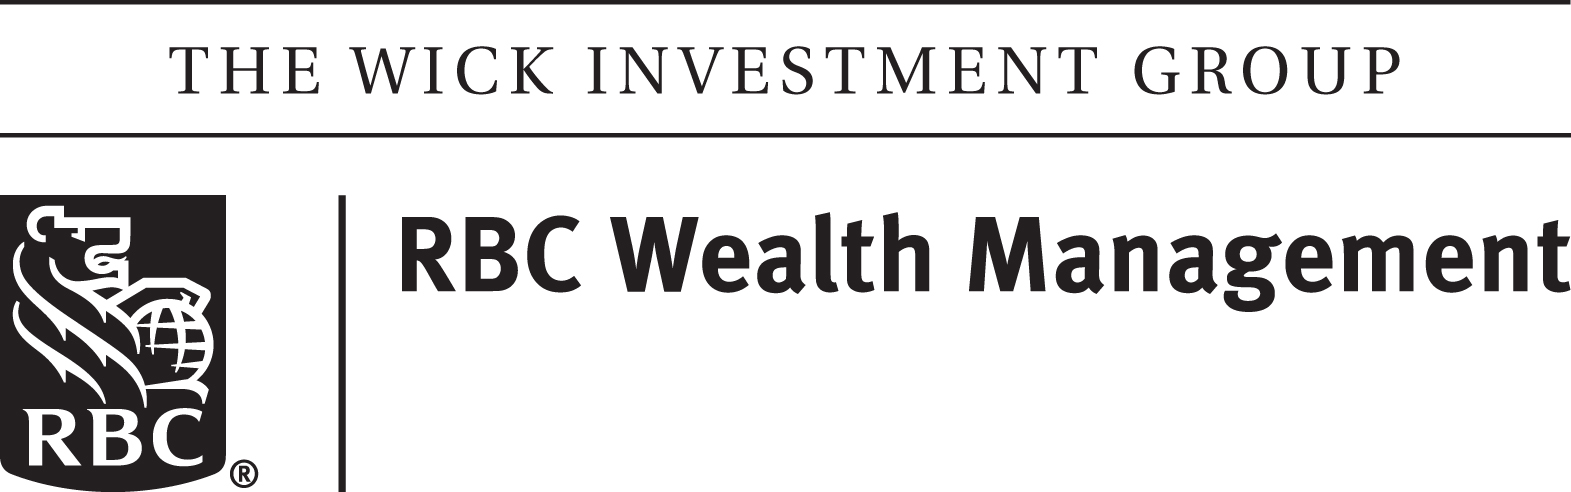 Wick Investment Group Black